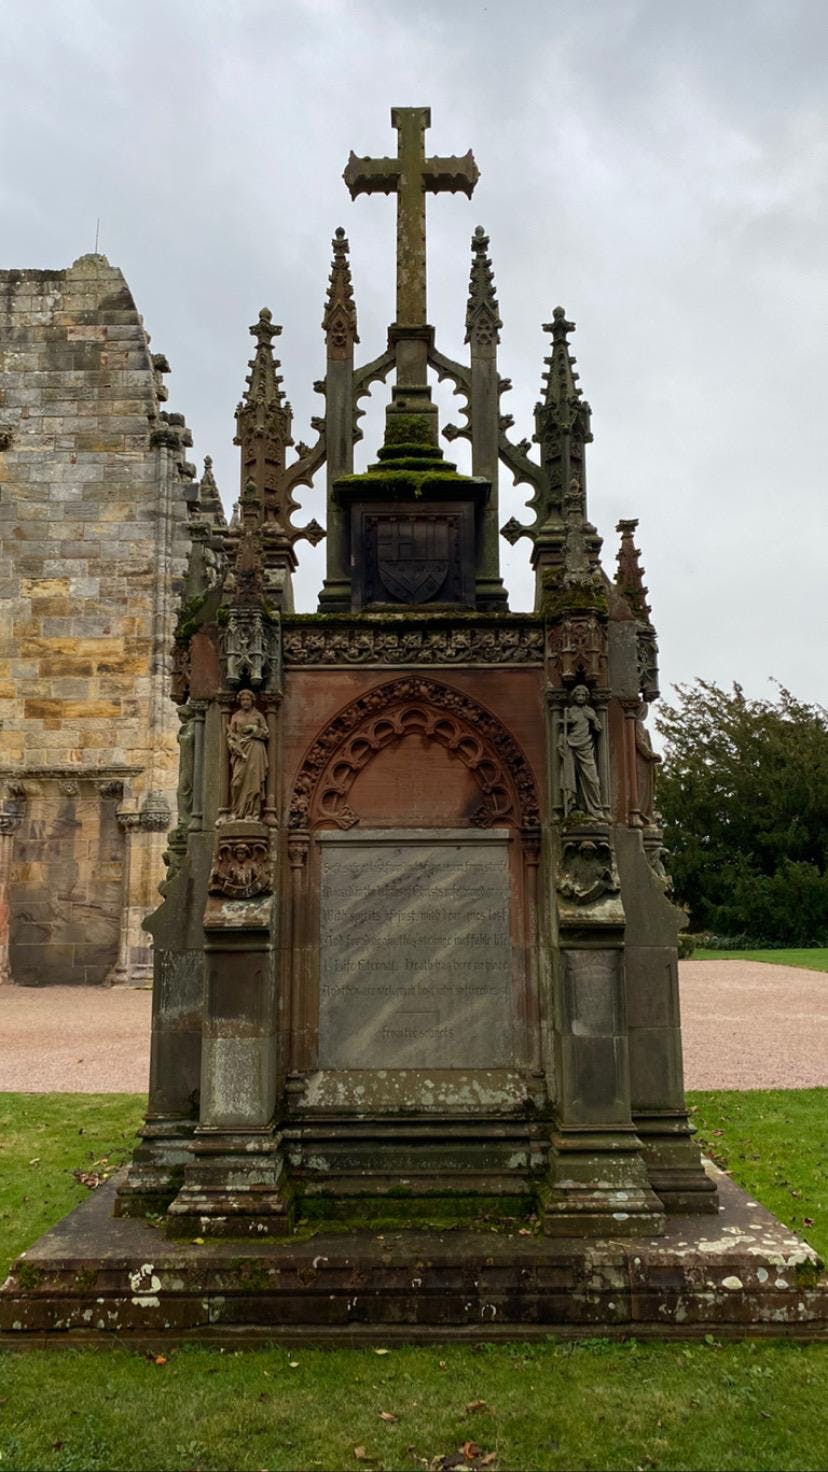 A very large and ornate stone with an inscription in the centre, made from red and grey stone. There are repeated archway patterns from the top of the inscription carved into the stone, to a spire-looking top section which has a large ornate cross at the very top. There are carved figures stood either side, making the stone look like a mini cathedral.